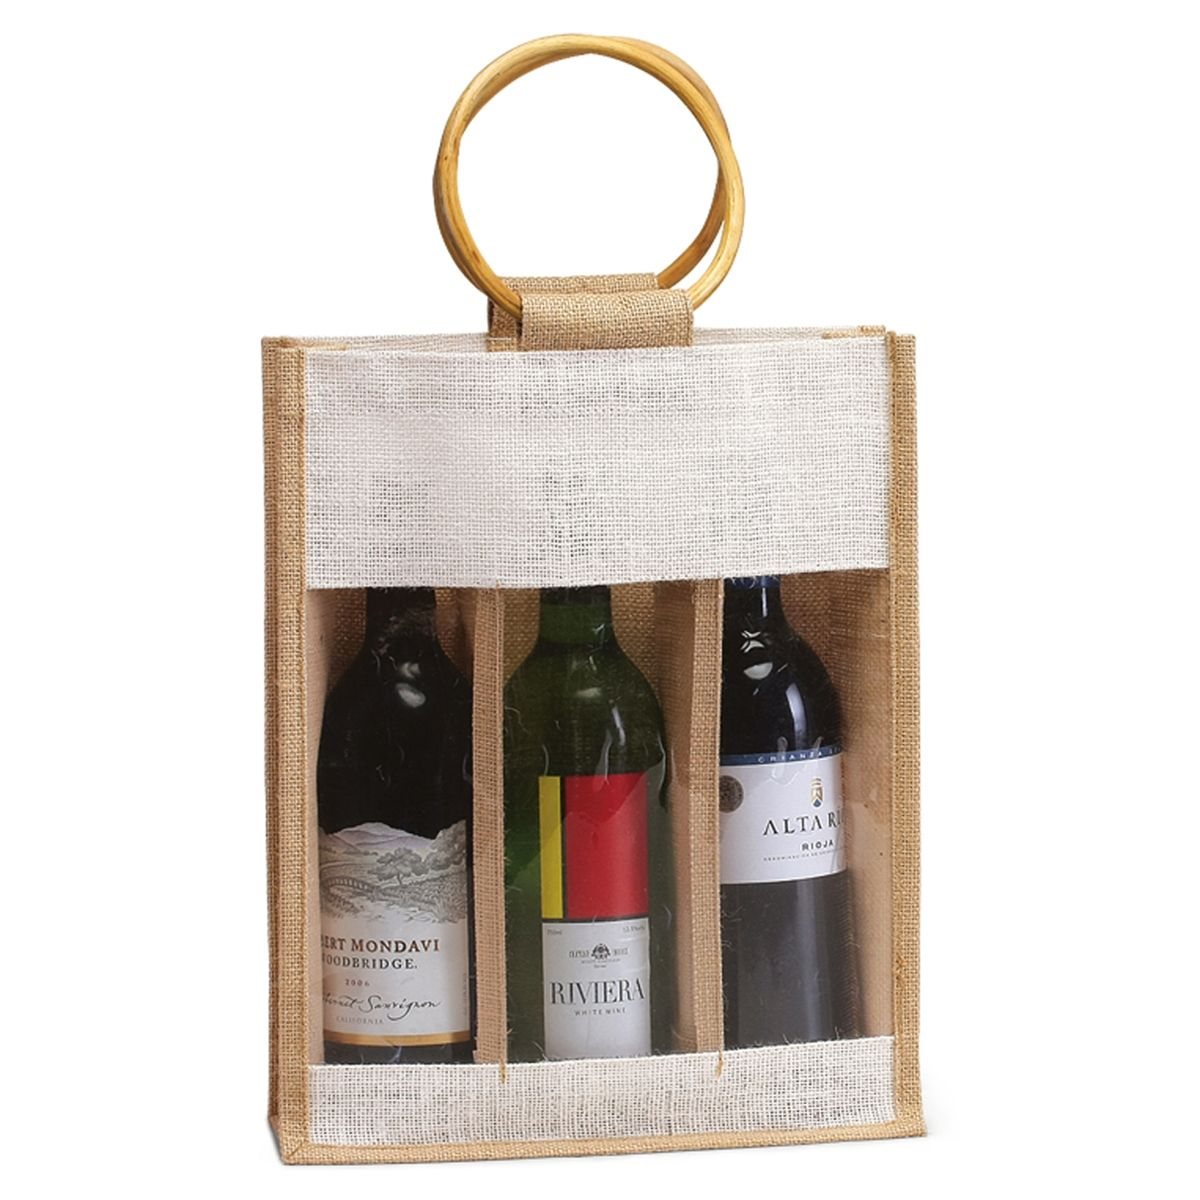 3 Bottle Jute Bag W Window Handles Wine Bags Com Gifts For Wine Lovers Wine Gift Bag Bottle